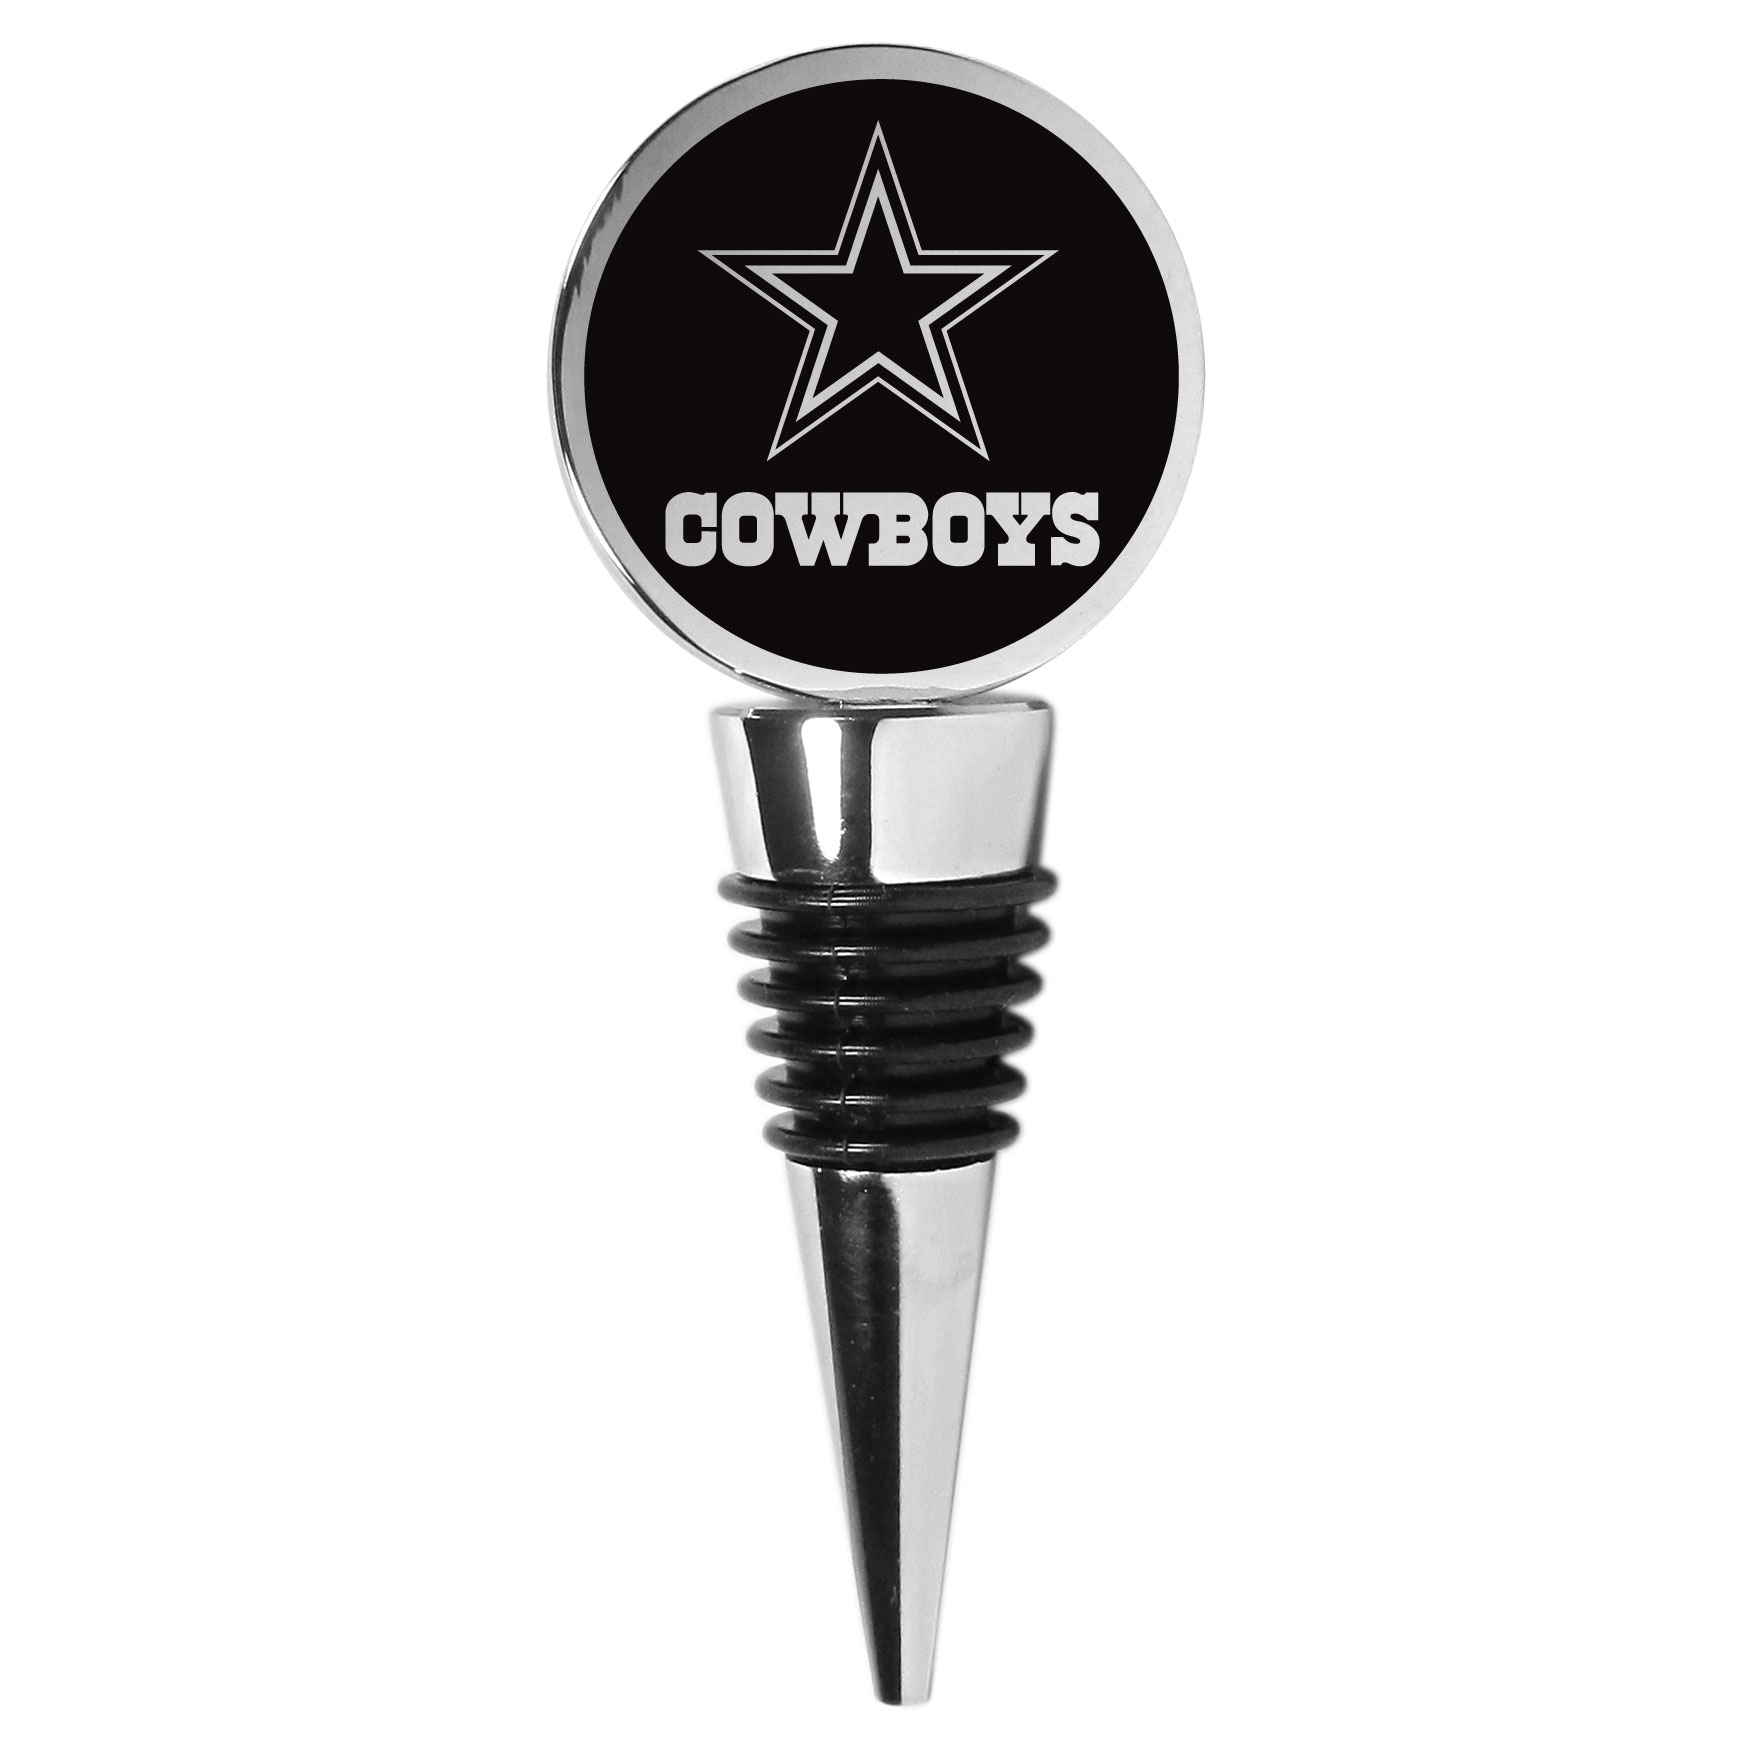 Dallas Cowboys Wine Stopper - This beautiful Dallas Cowboys wine stopper has a classy monochromatic logo on the top disc. The tapered rubber rings allow you to create a tight seal on multiple sizes of wine bottles so that you are able to preserve the wine for later enjoyment. This a perfect addition to a game day celebration.